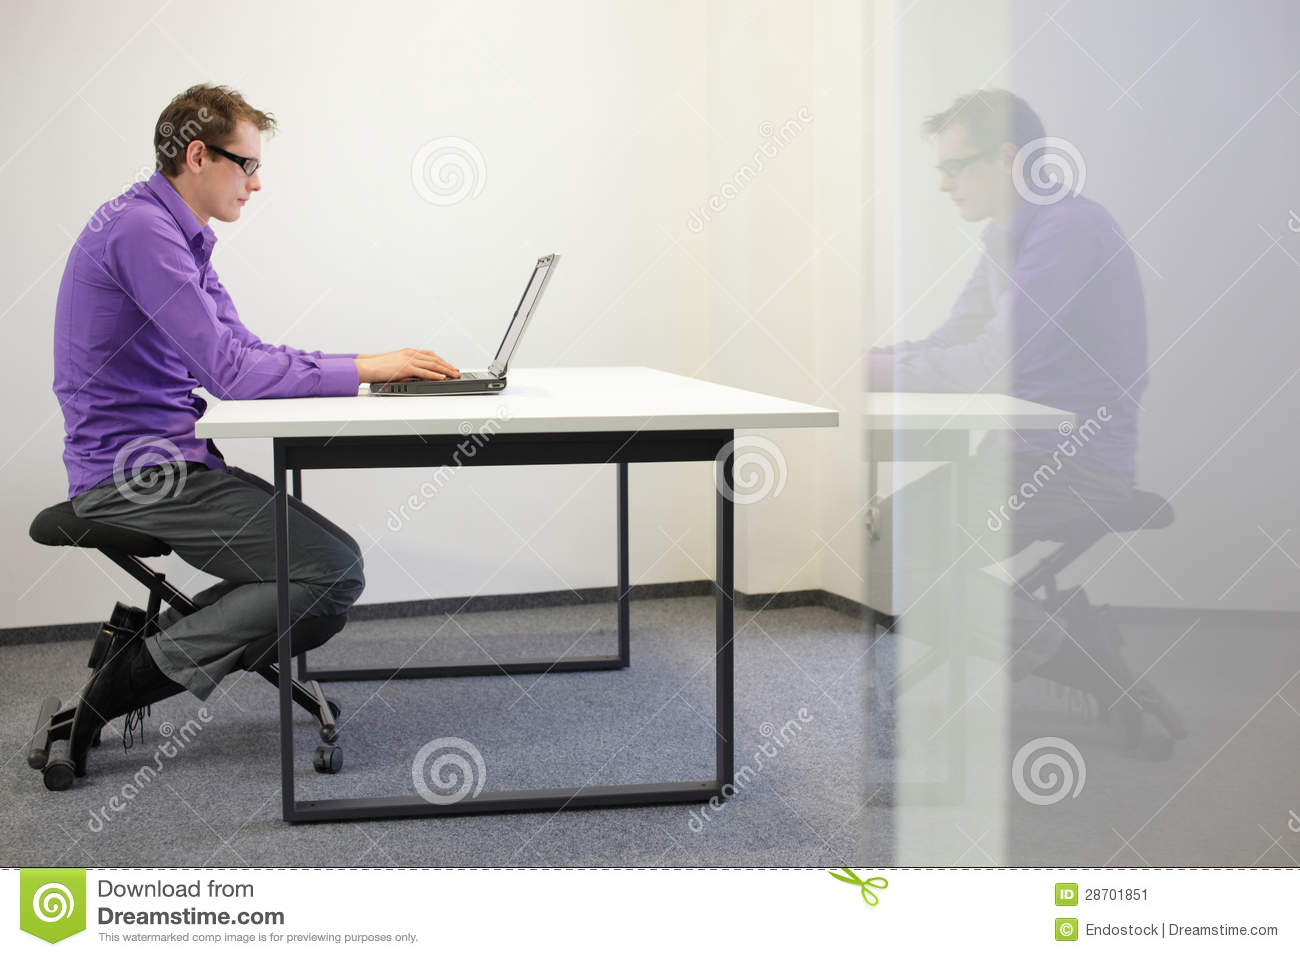 Bad Sitting Posture On Kneeling Chair Stock Image Image